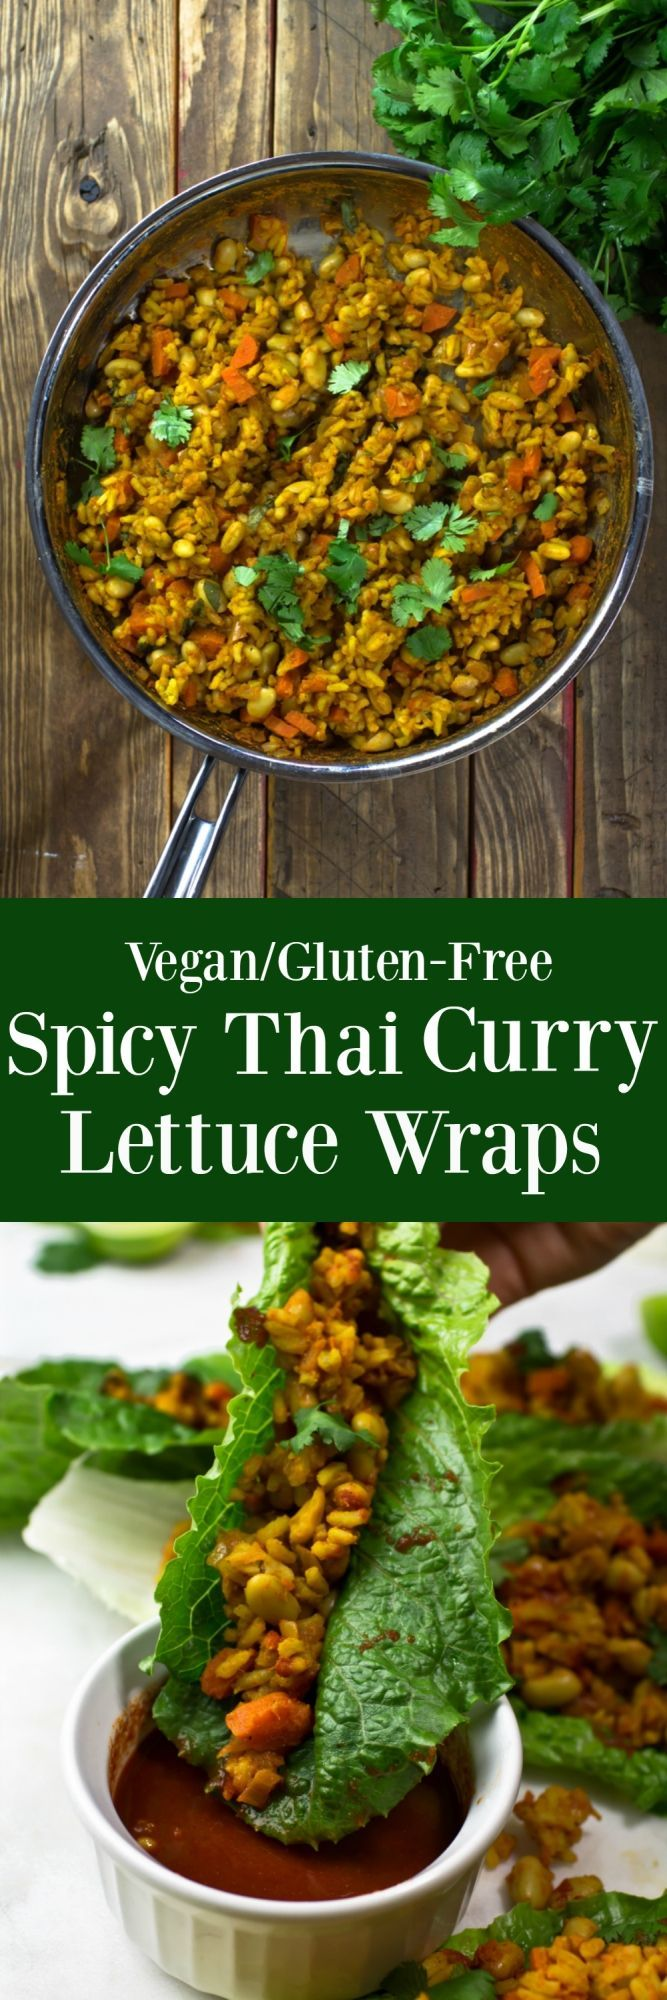 These Vegan Spicy Thai Curry Lettuce Wraps are full of bold flavors, a spicy kick and a crispy bite from fresh romaine lettuce leaves. They are accompanied with a delicious spicy and slight sweet Thai Curry Lime Sauce that is great for dipping into complete flavor explosion! via @thevegan8